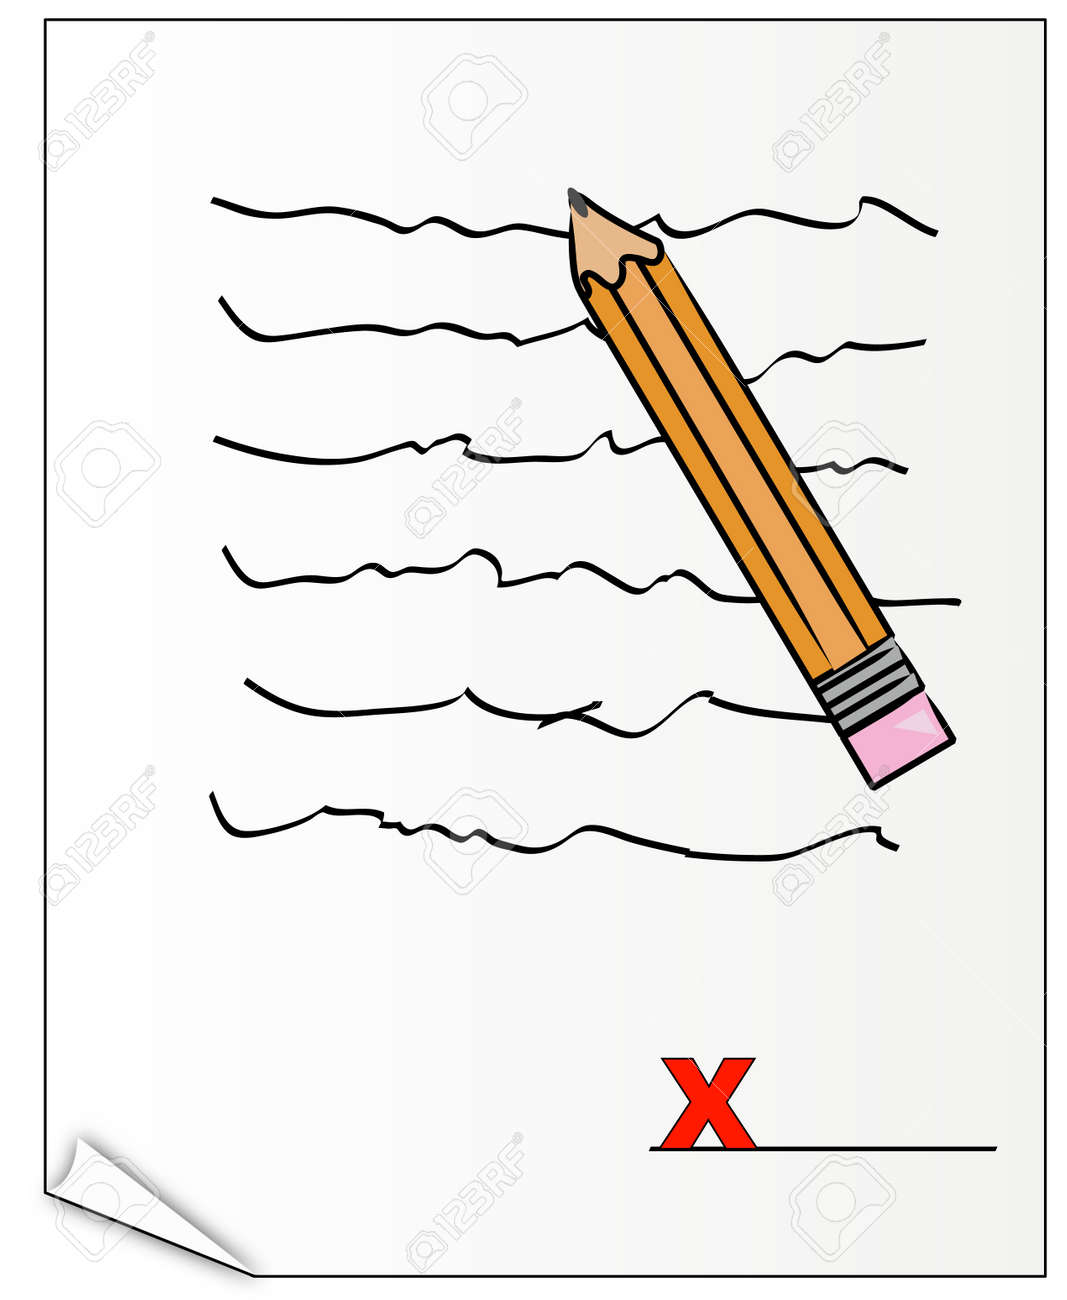 signing on the x on official document - vector Stock Vector - 2733736